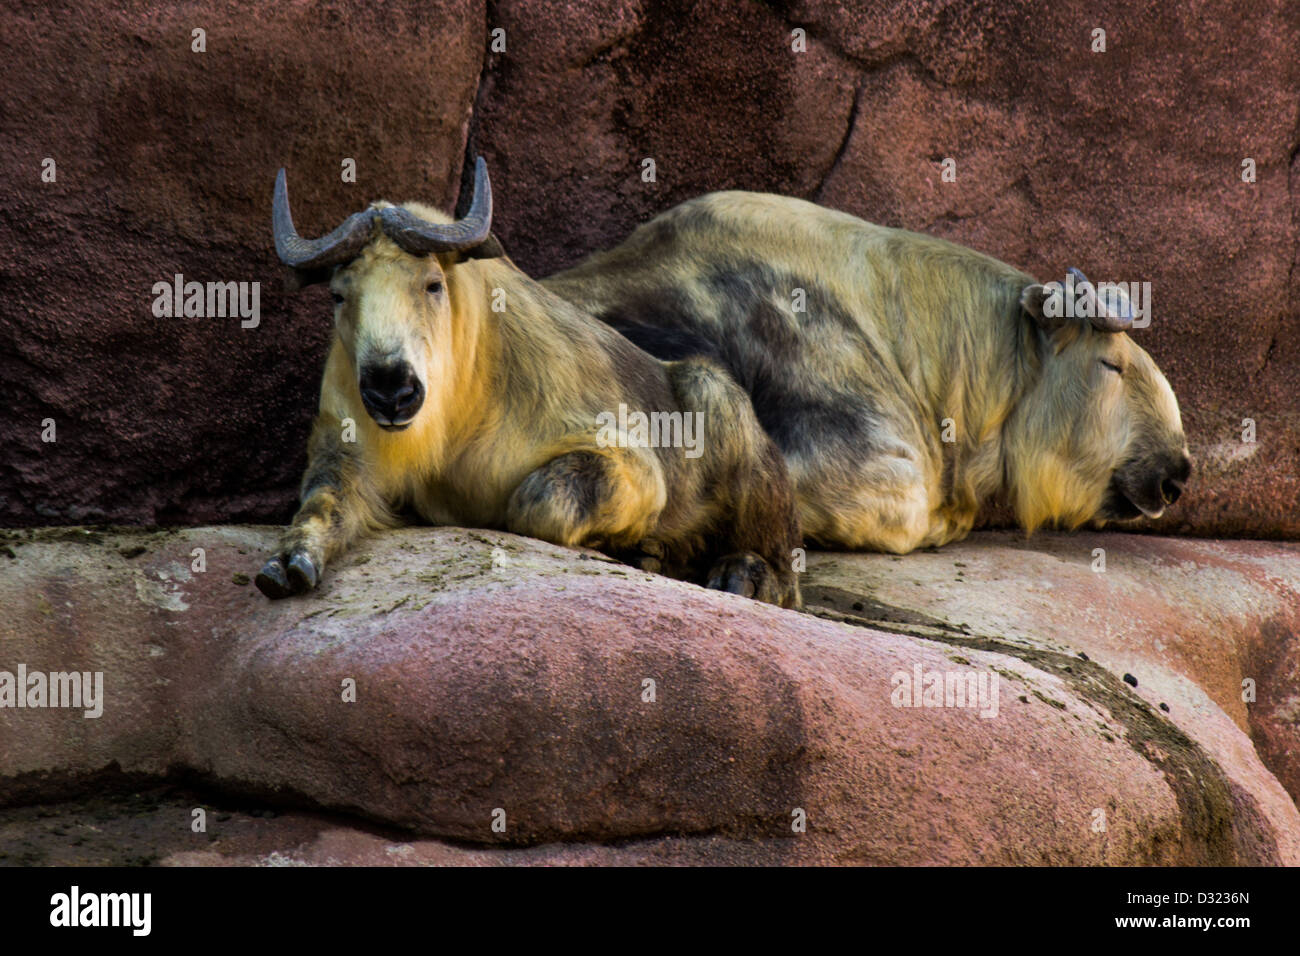 Two mountain goats resting on a rock - Stock Image